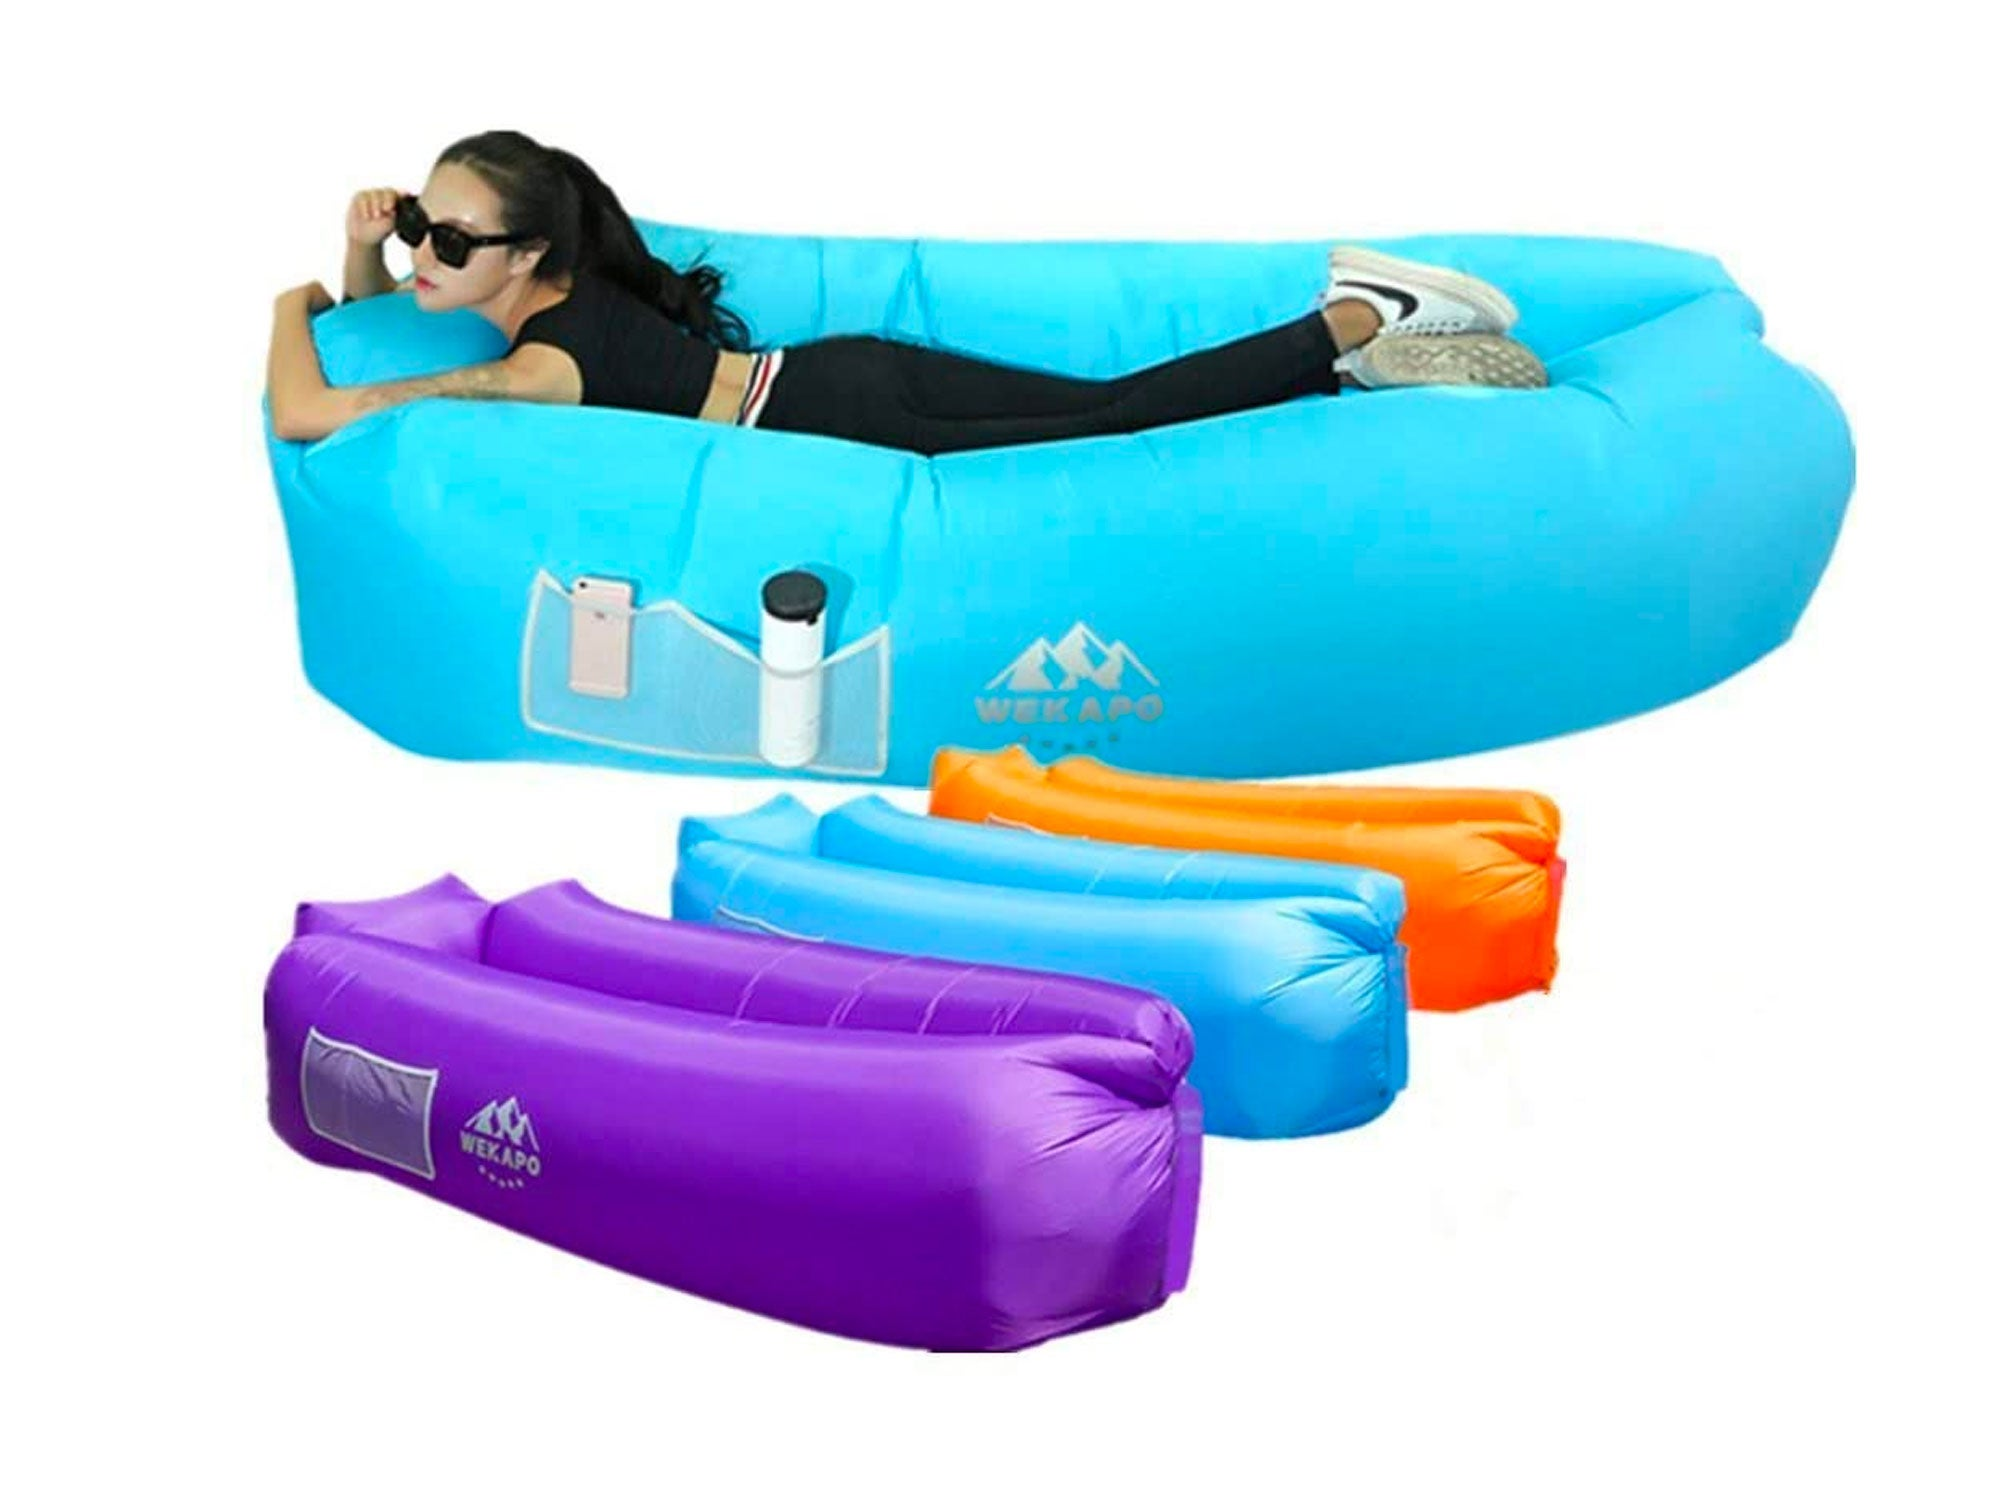 Wekapo Inflatable Lounger Air Sofa Hammock-Portable,Water Proof& Anti-Air Leaking Design-Ideal Couch for Backyard